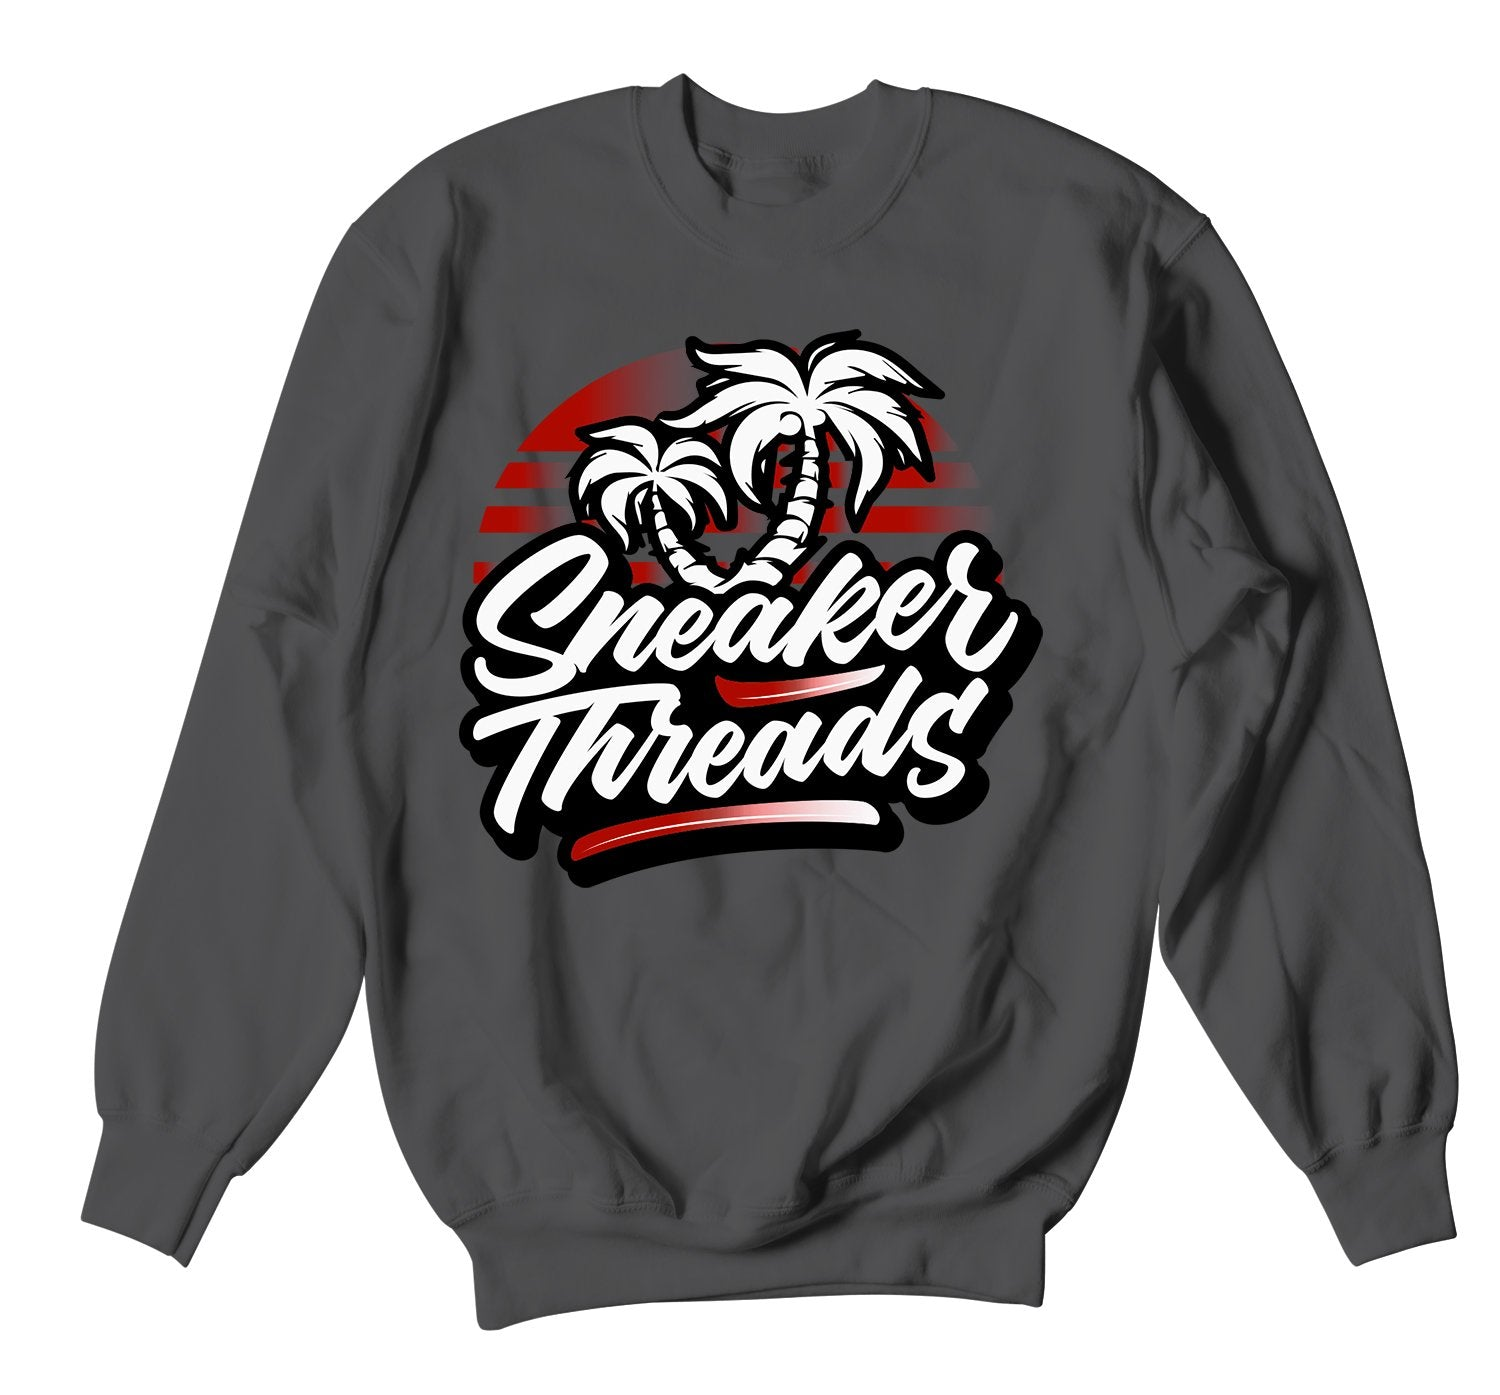 Crewneck collection for men designed to match the Jordan quilted 14s